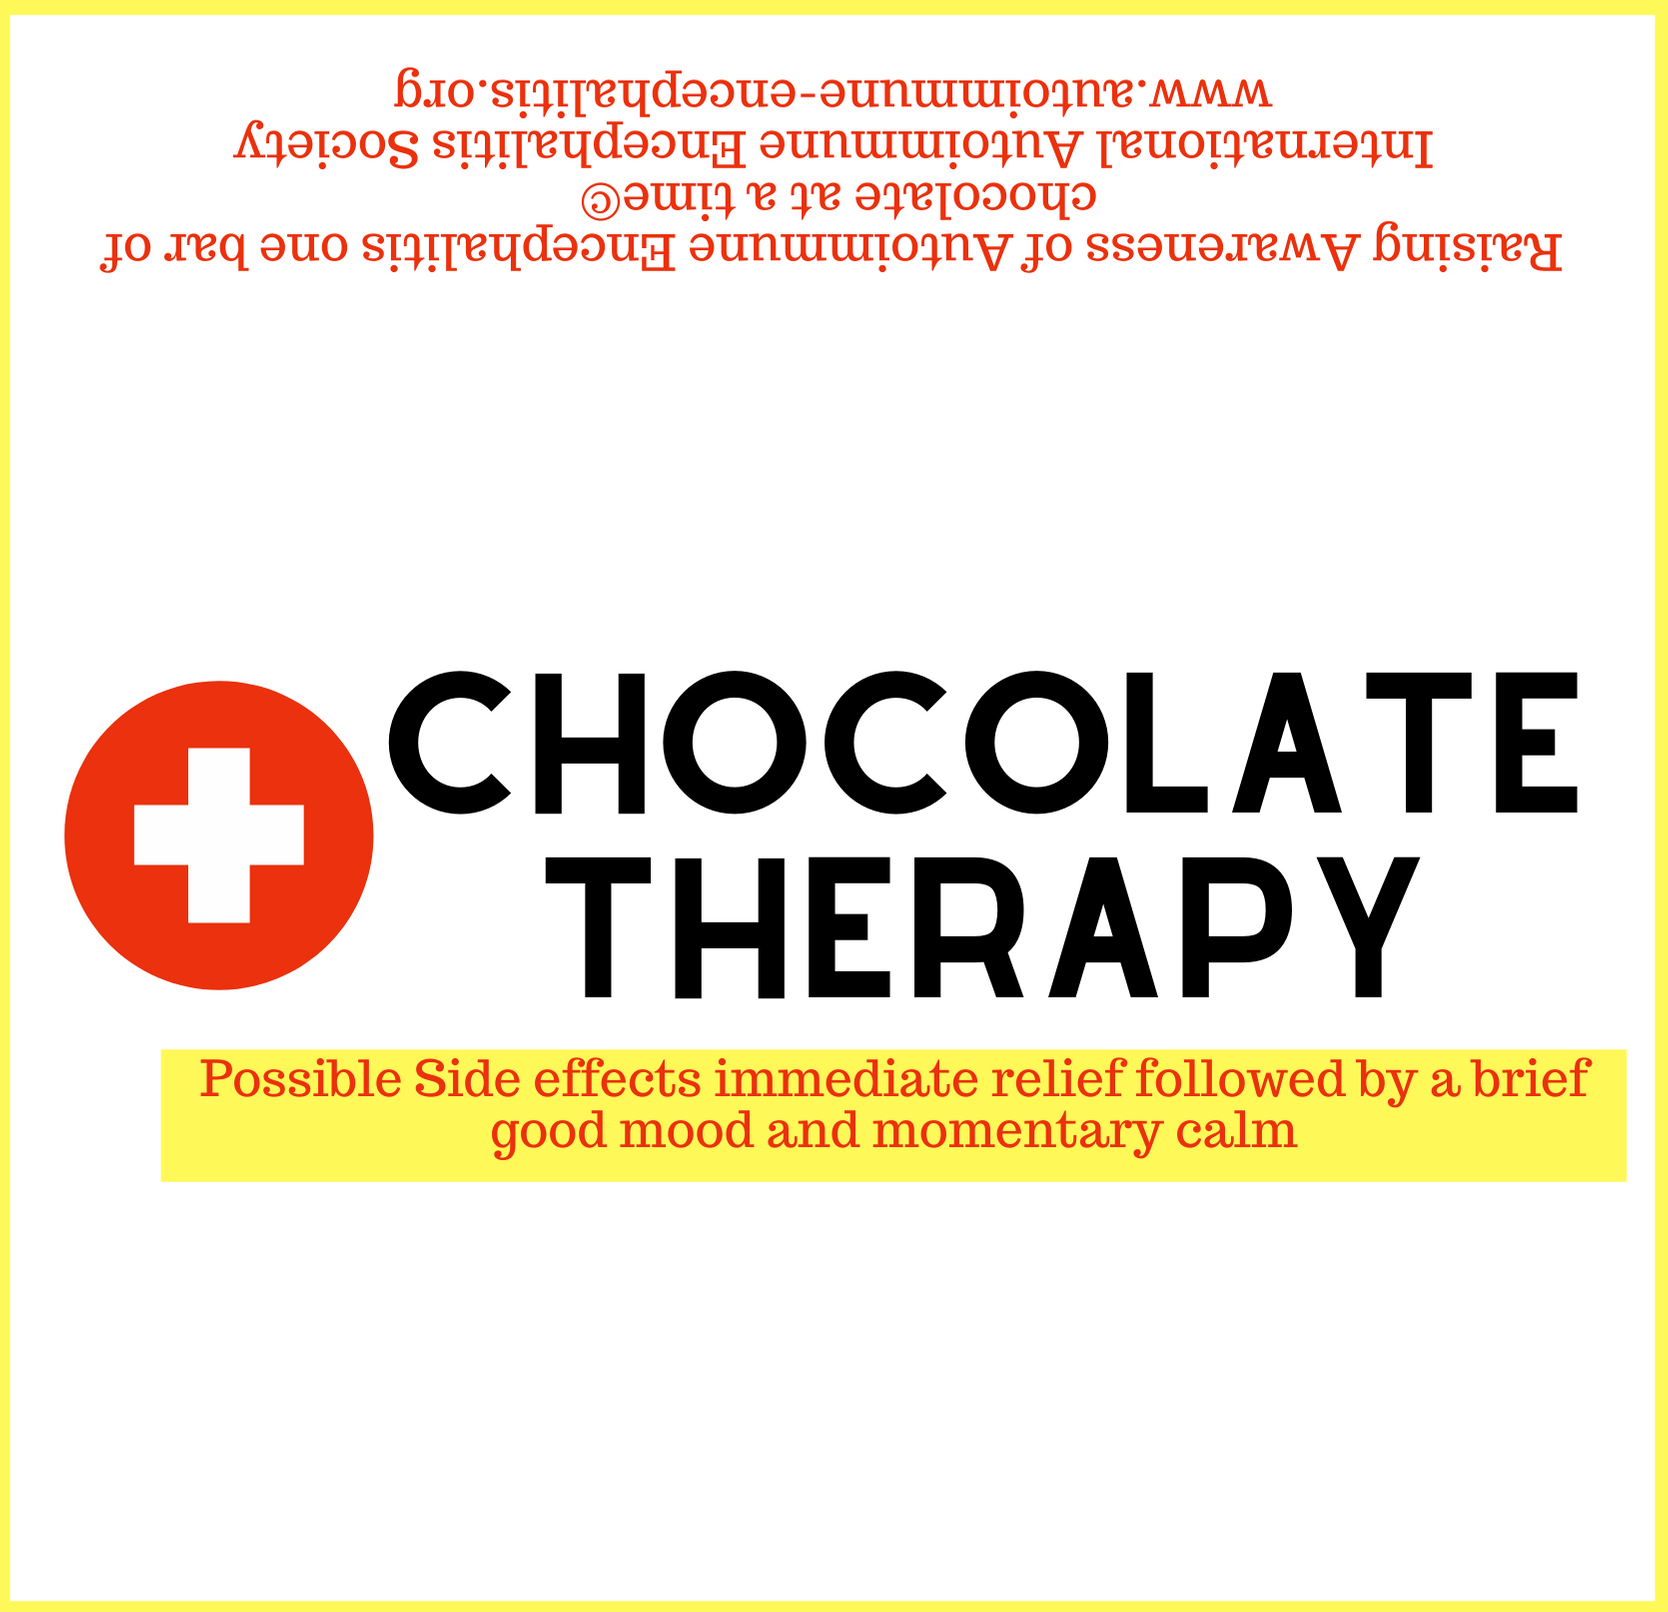 Chocolate Therapy Candy Wrapper 5 9 16  x 5 3 8  - Downloads